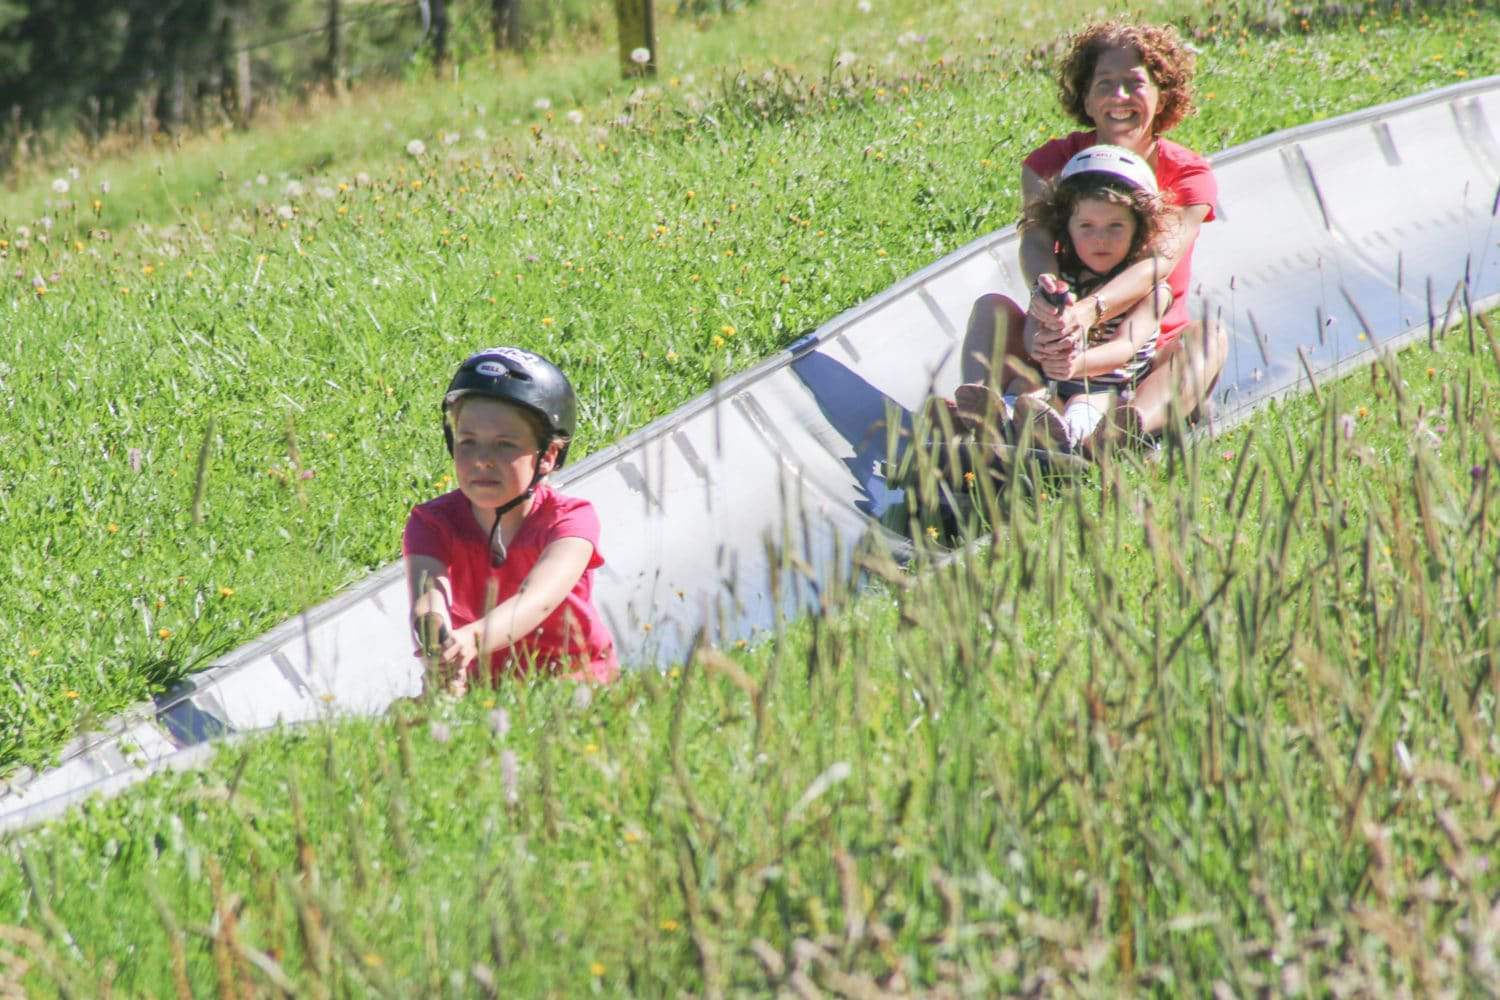 summer activities in the alps - the bob luge at Pre la Joux, Châtel